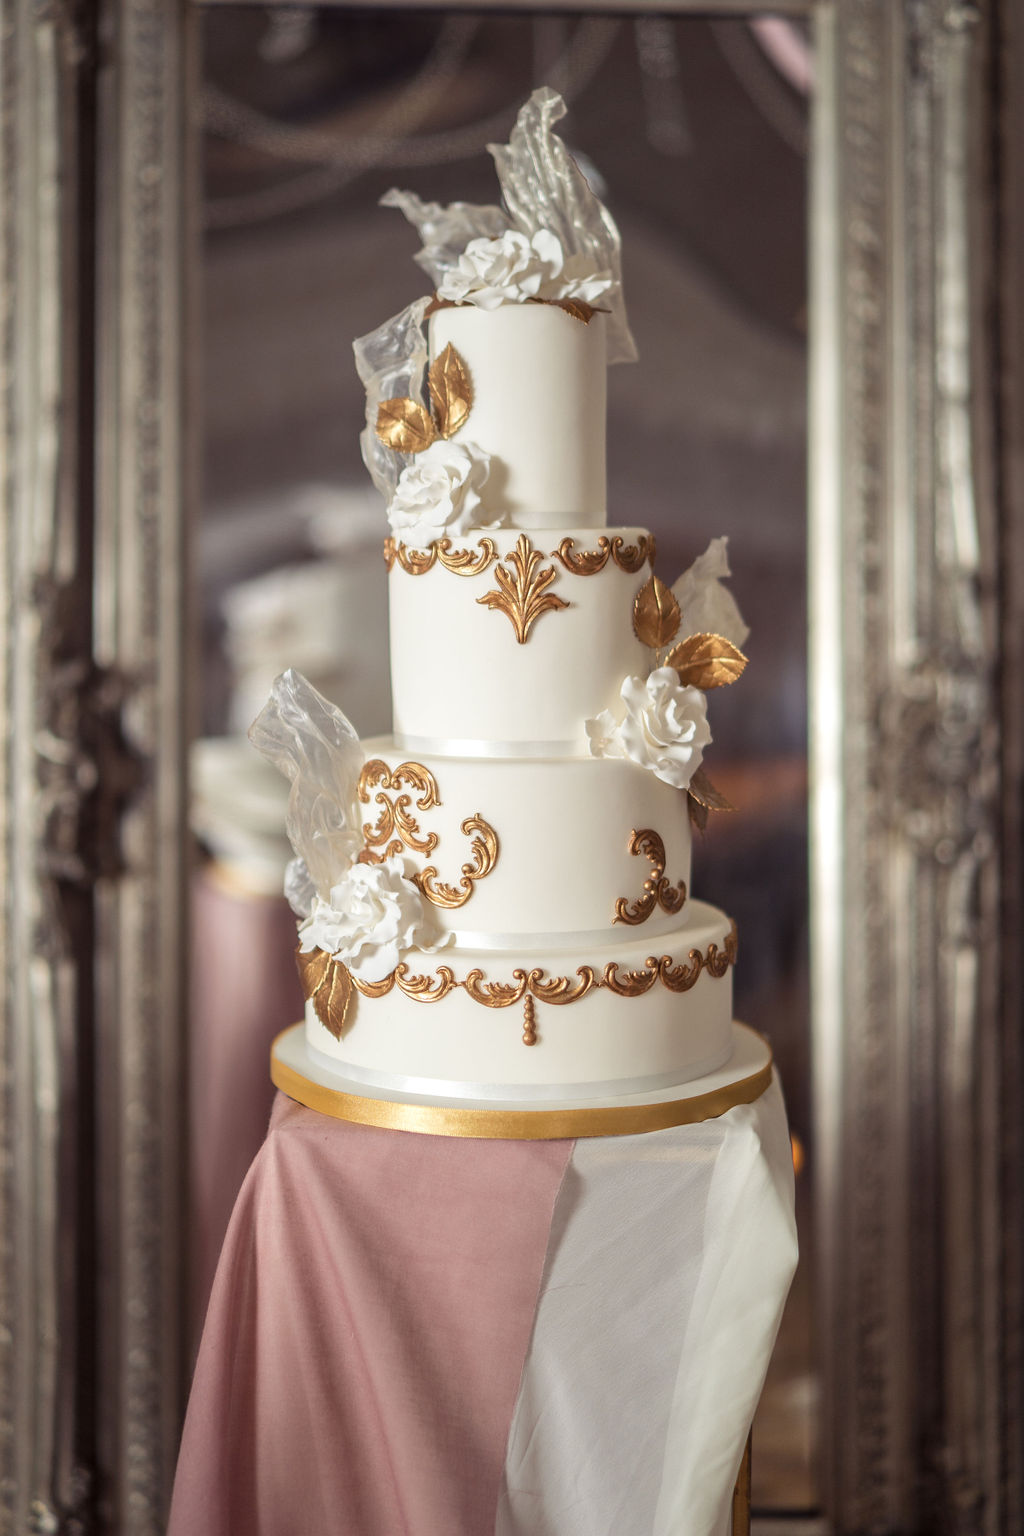 Ornate 3 tier gold and white wedding cake with white sugar flowers for movie themed wedding day on dusky pink pedestal 2